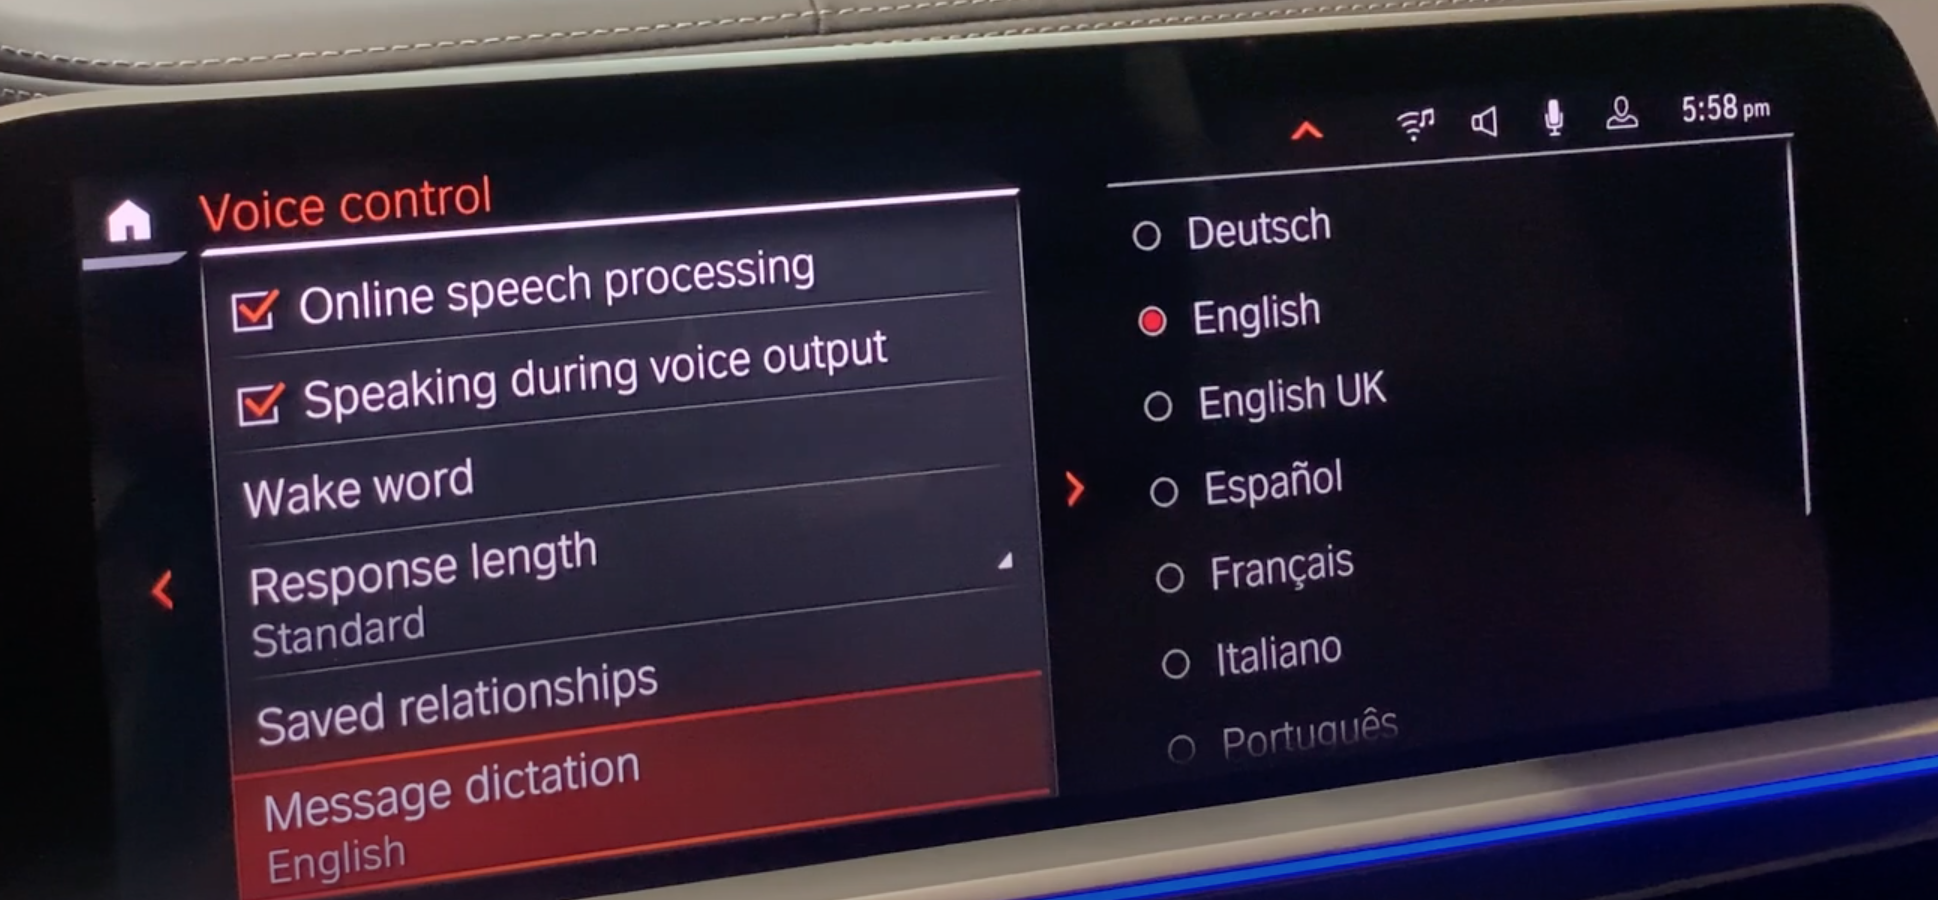 Various voice assistant settings listed on the right with the option to choose message dictation language on the right from a list of languages